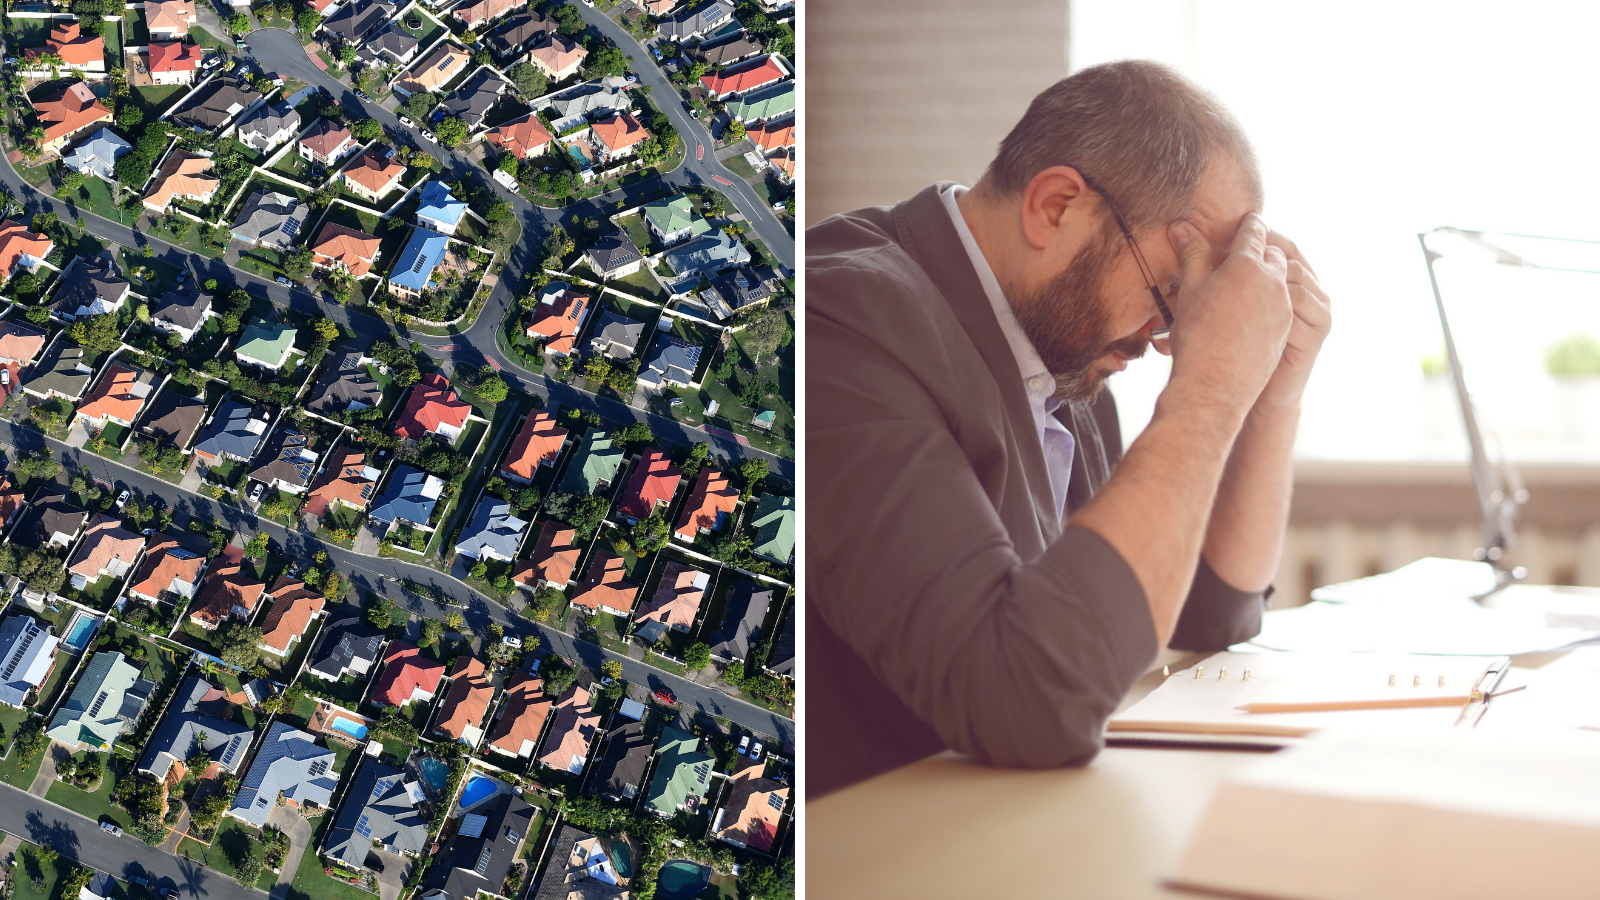 Property market meltdown could ruin small businesses, treasurer warns